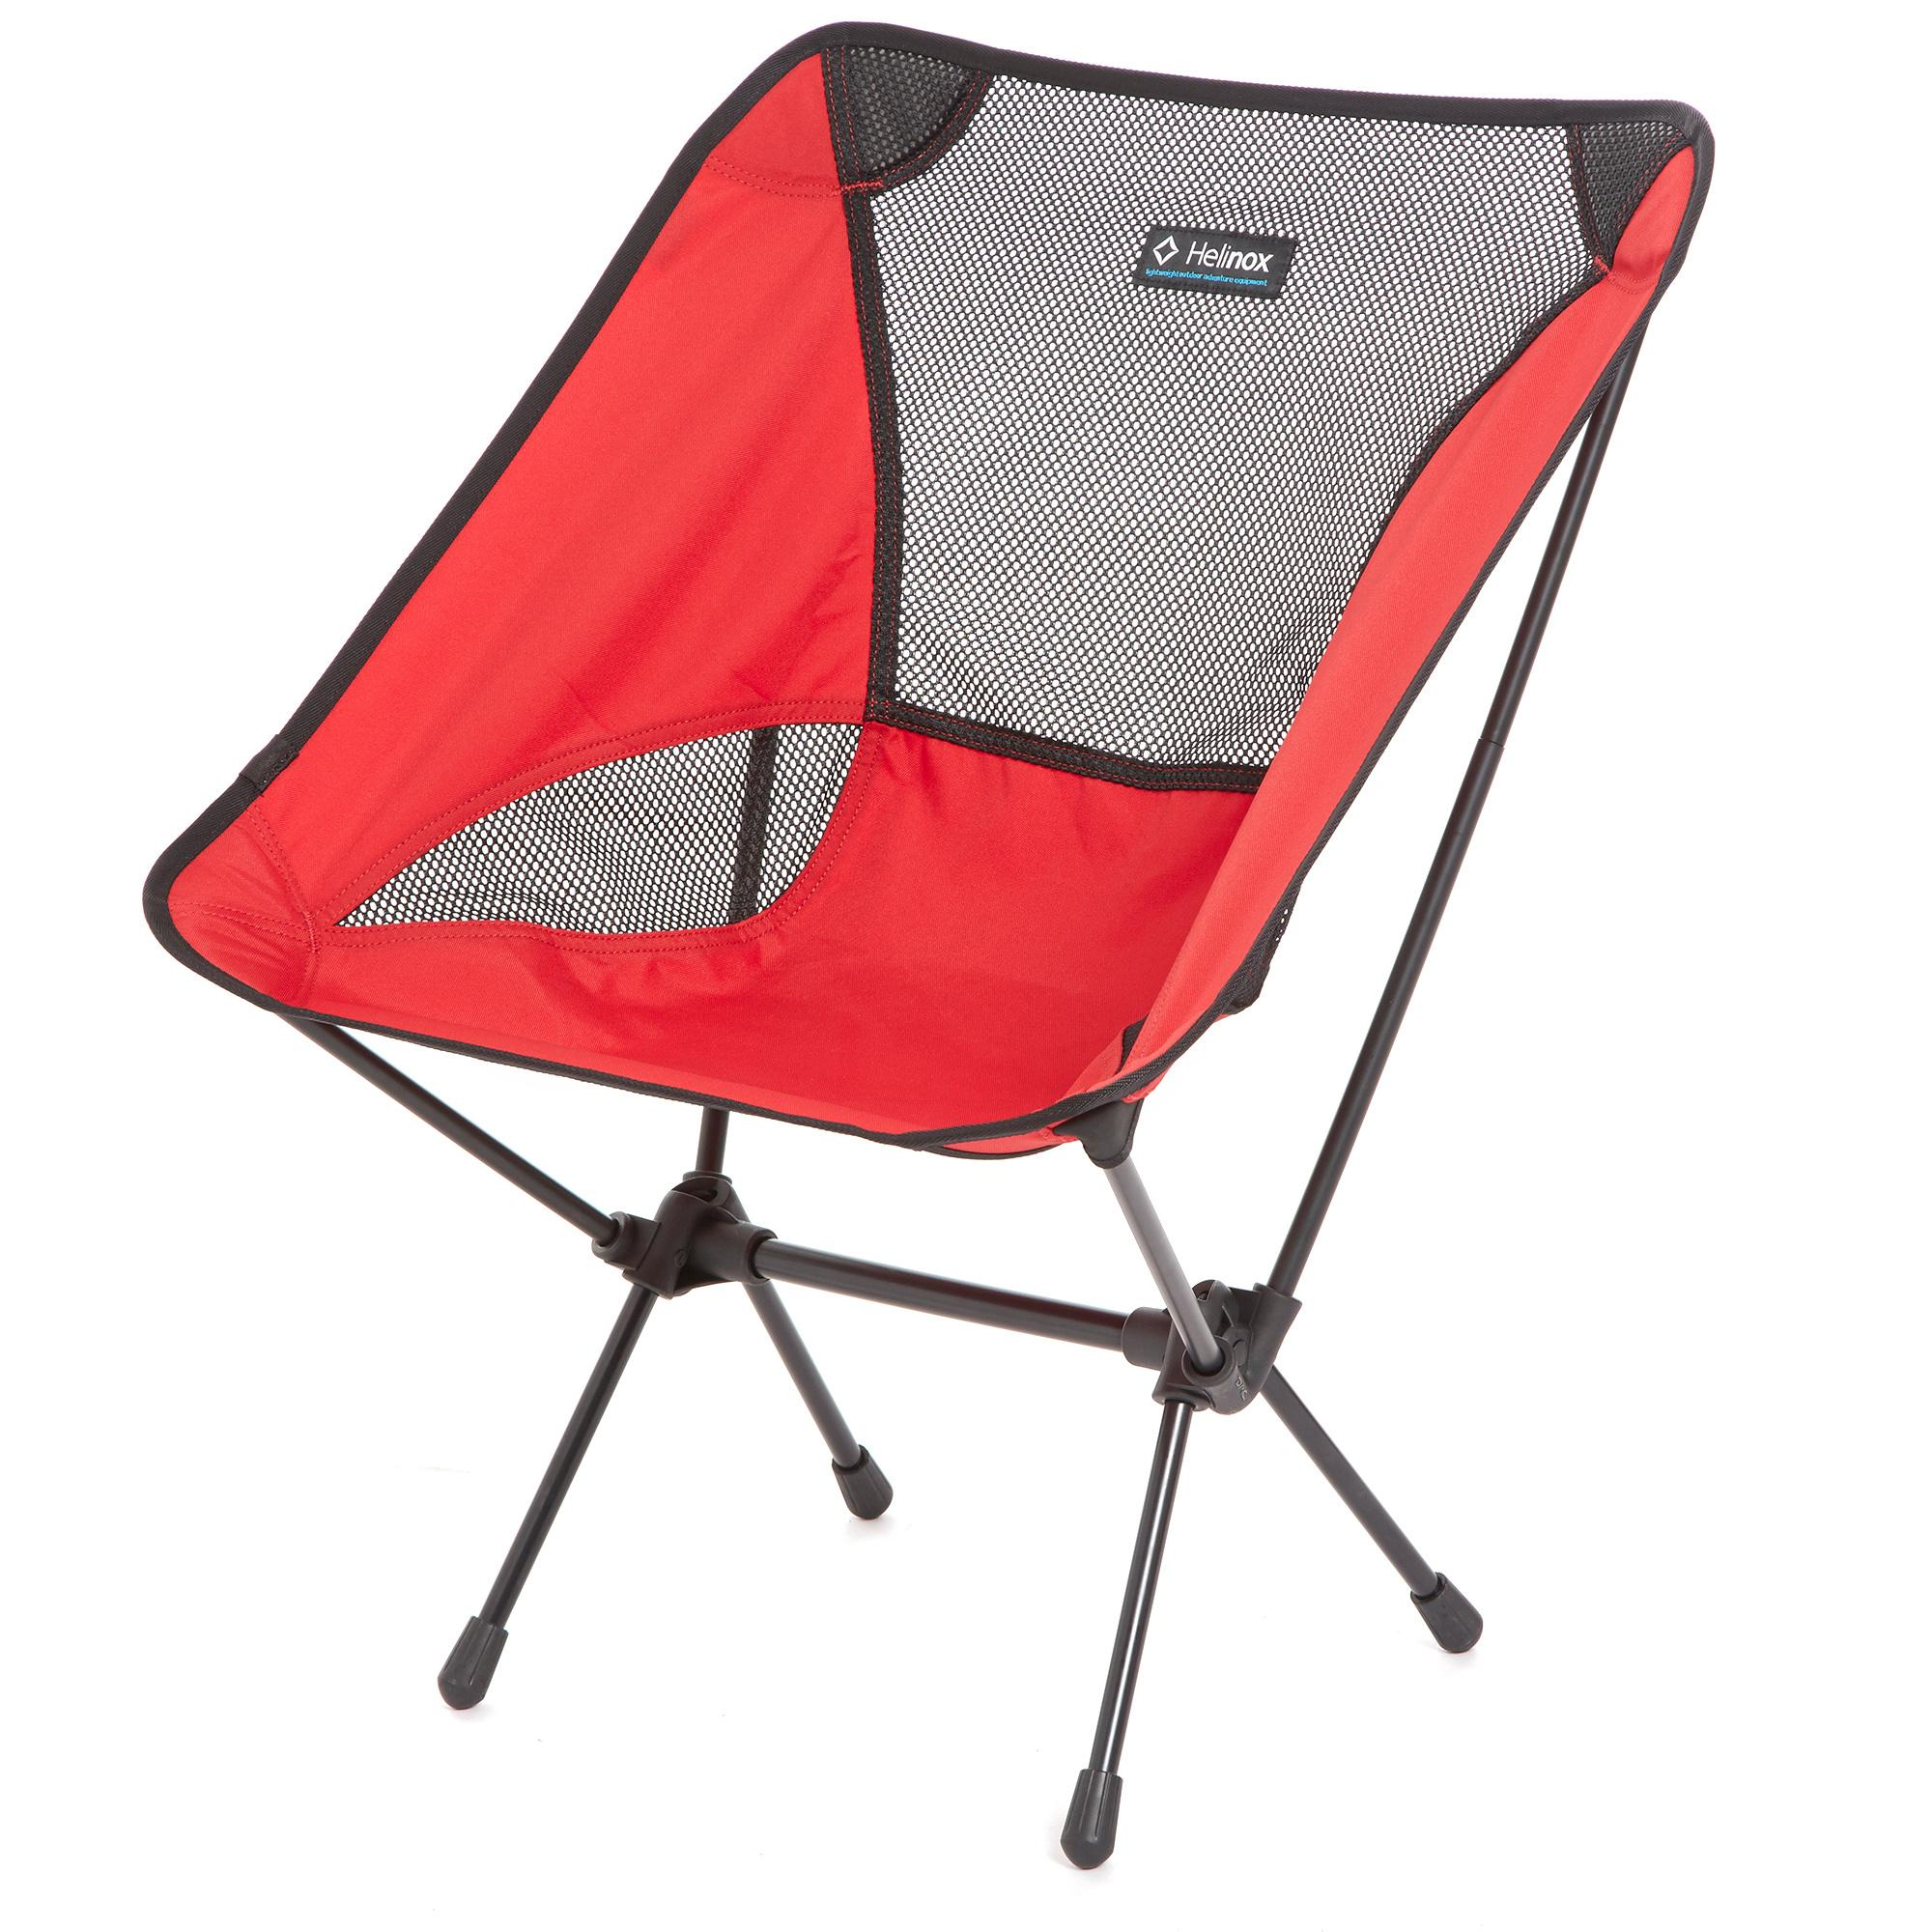 Helinox Archives Tent Buyer Compare Tent Prices Amp Save